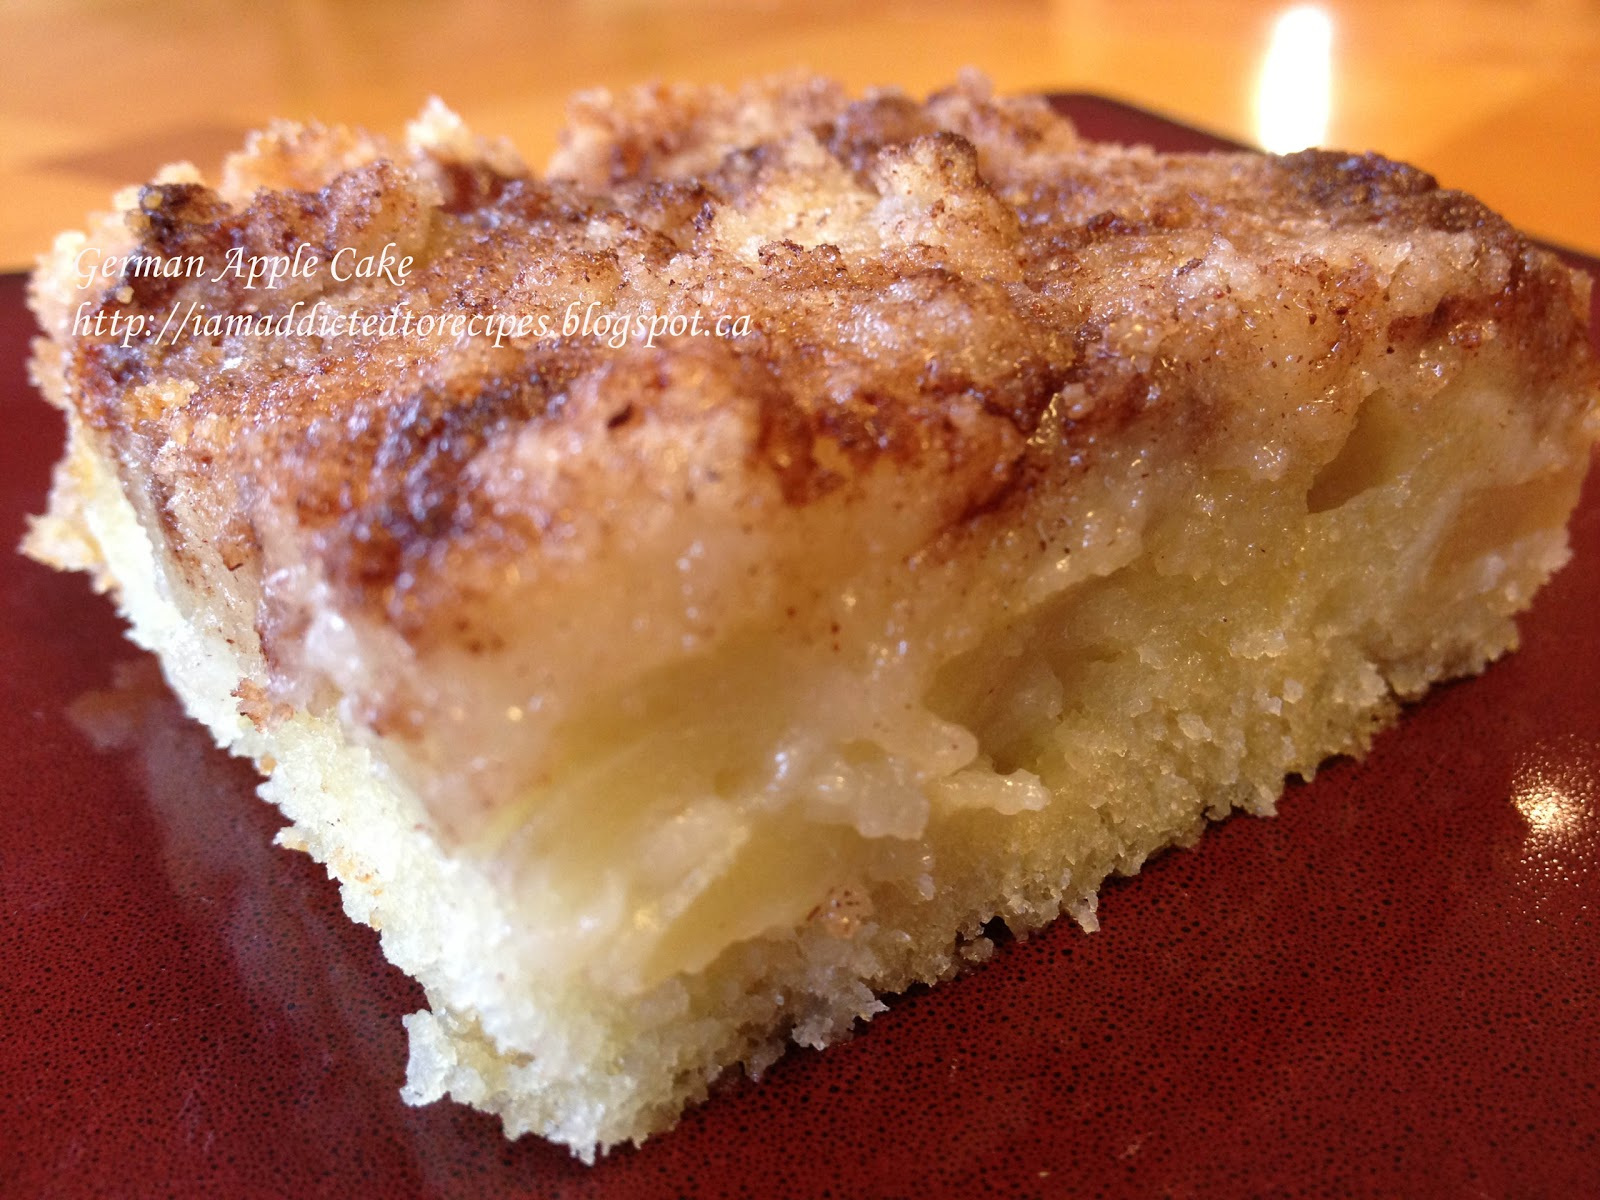 ... apple cake southern apple and pecan cake german pan cake s german pan